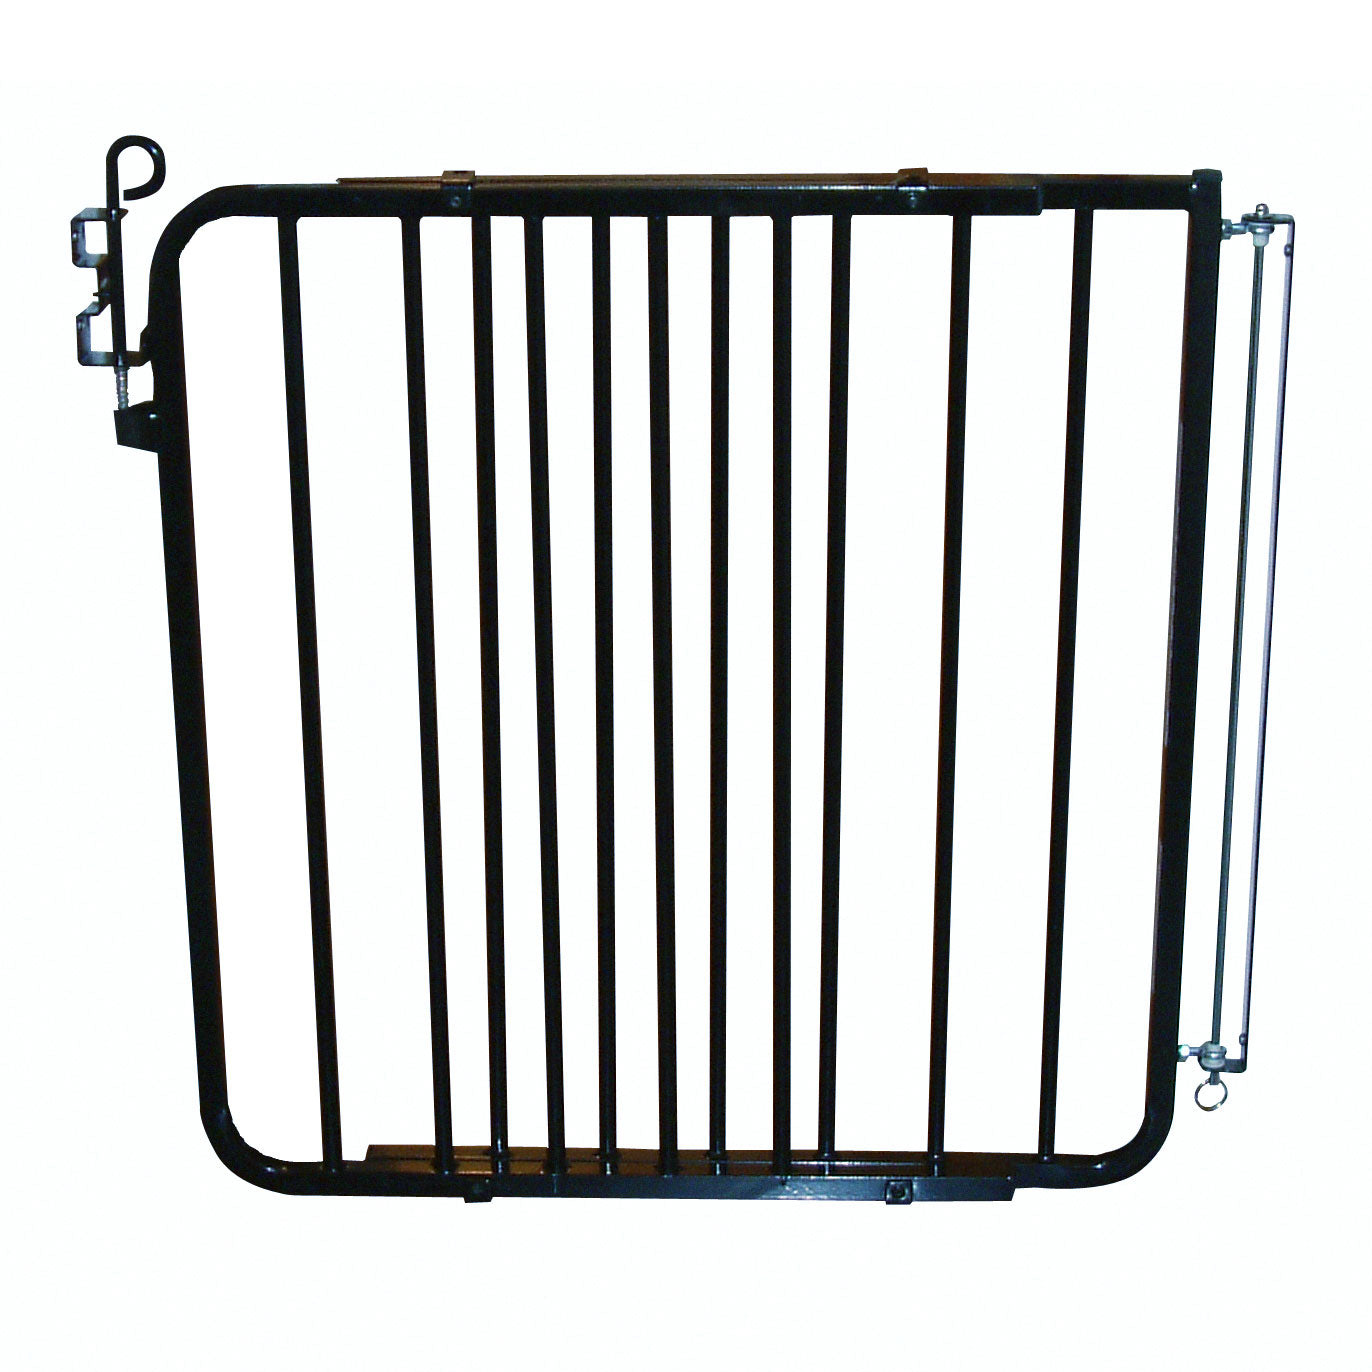 "Cardinal Gates Auto Lock Hardware Mounted Dog Gate Black 26.5"" - 40.5"" x 1.5"" x 29.5"" Dog Gates - London the Local"